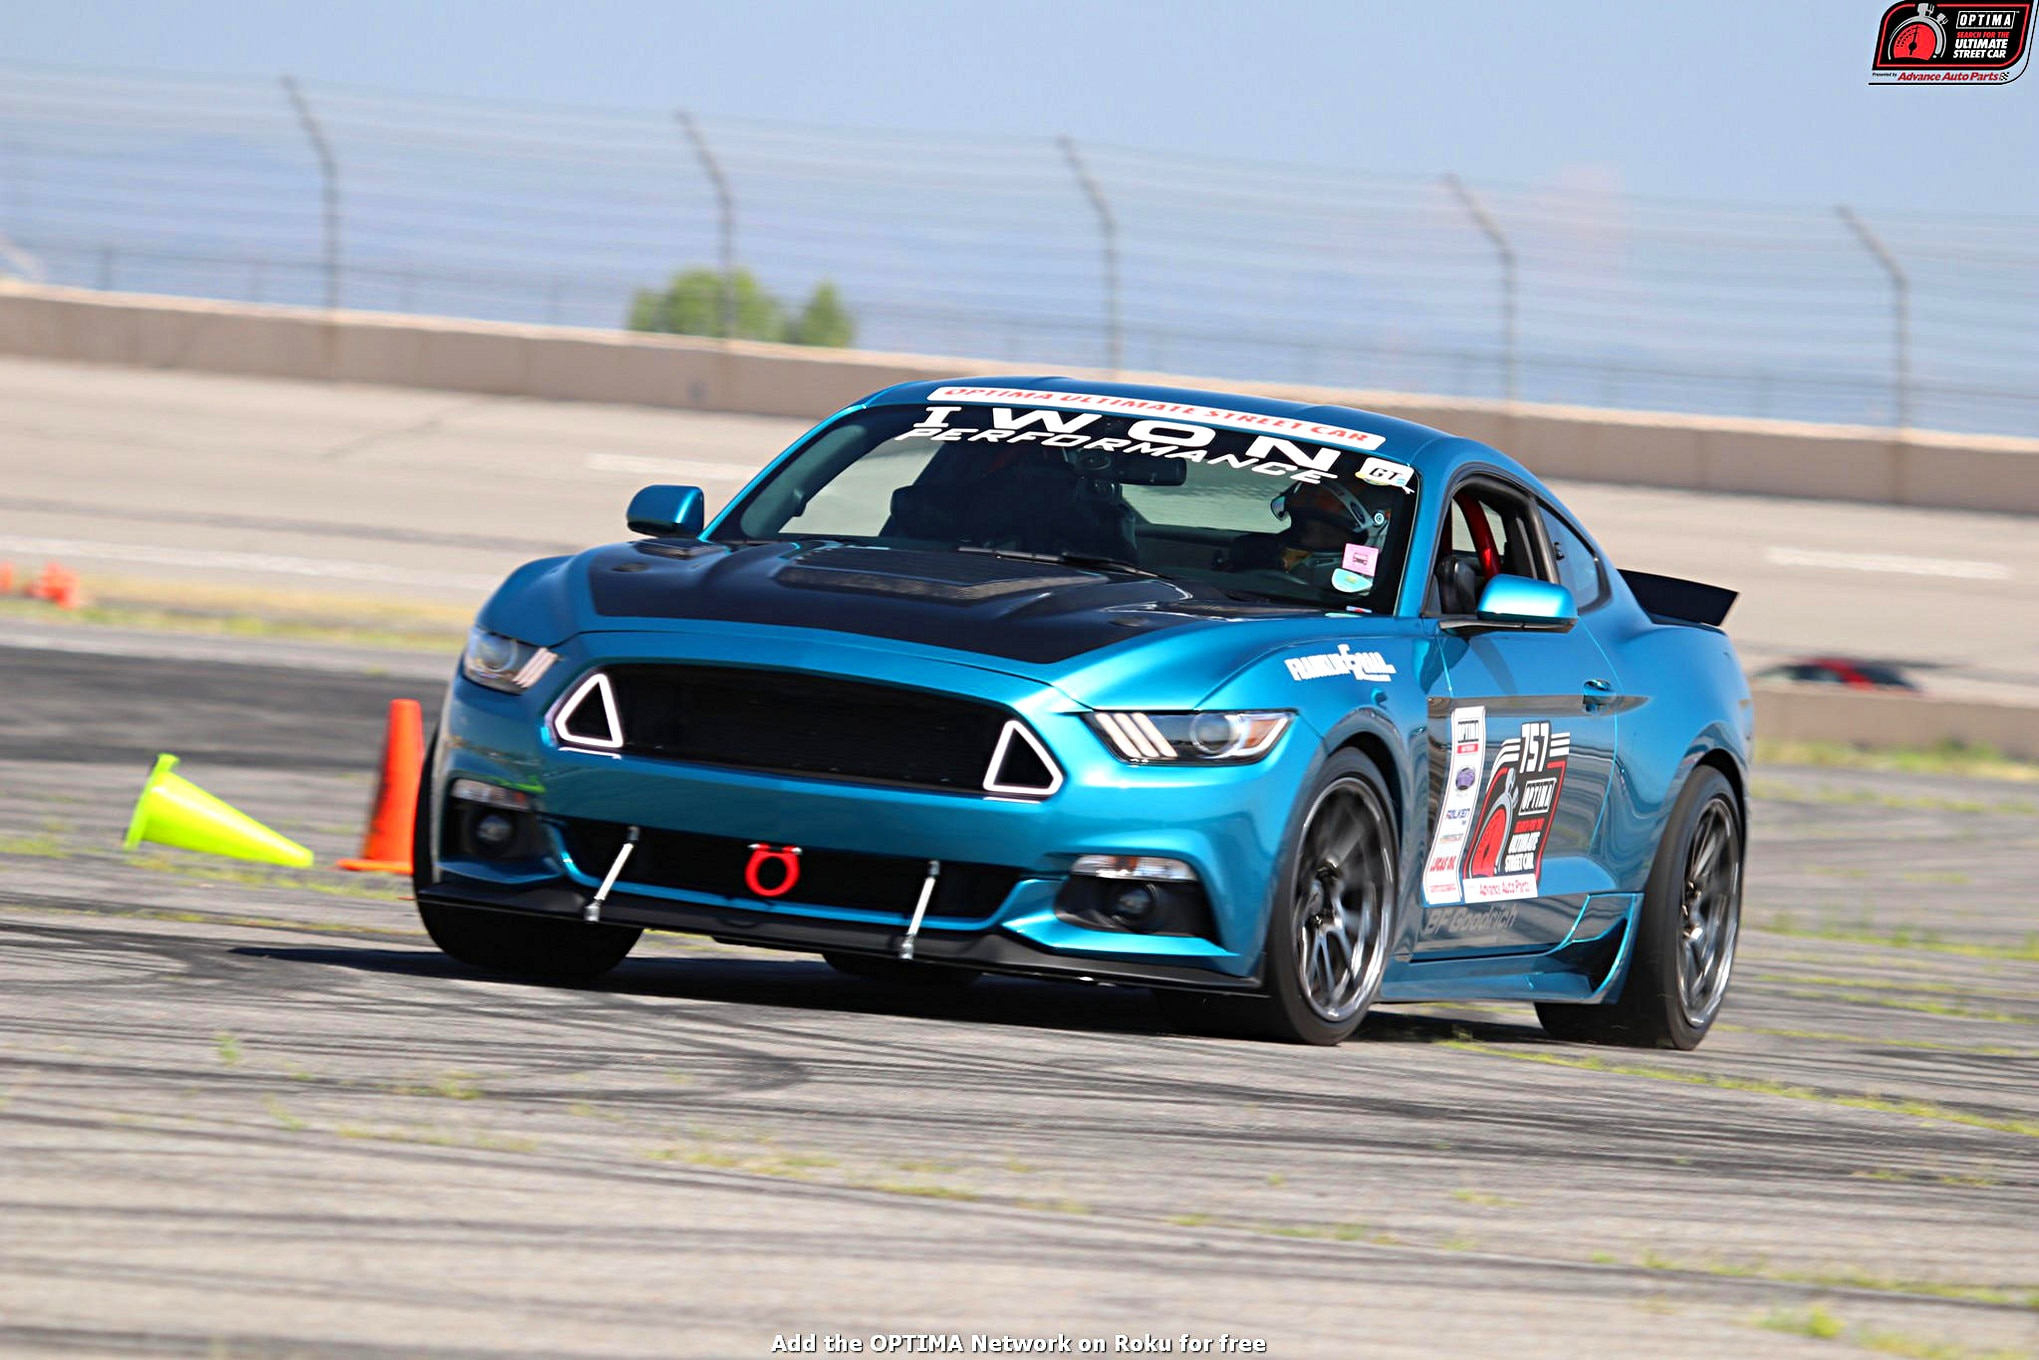 Ron Schoch 2016 Ford Mustang DriveOPTIMA Pikes Peak International Raceway 2018 229